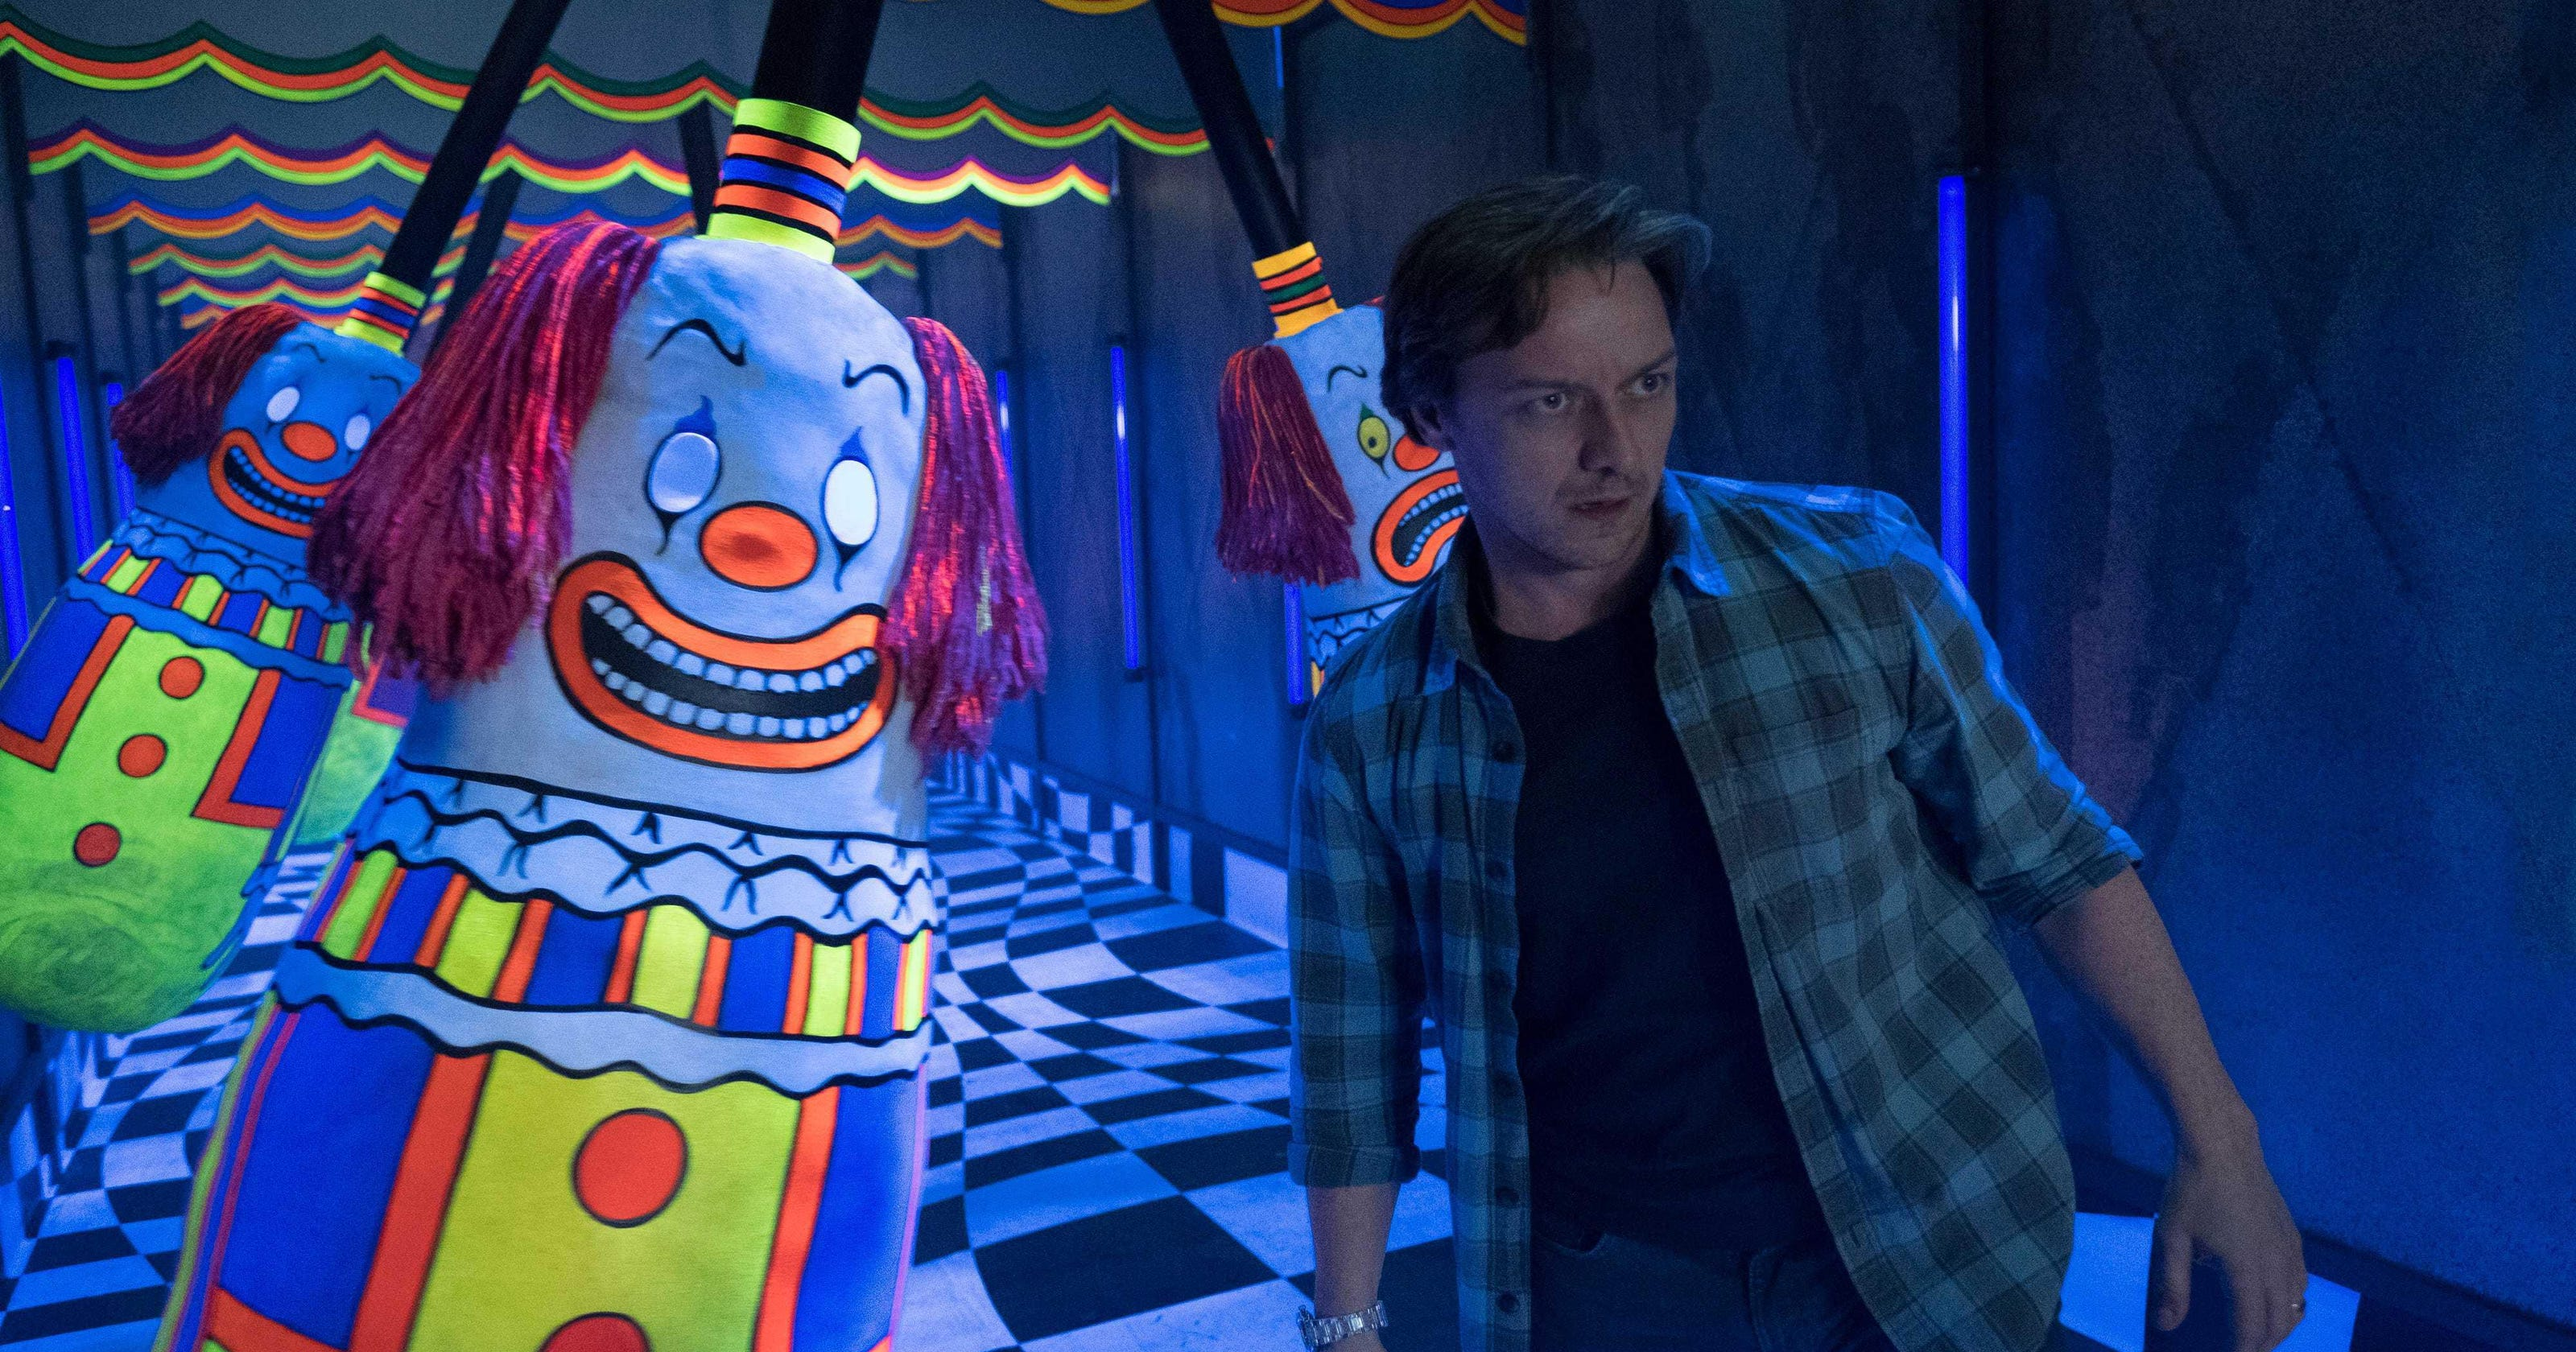 'It Chapter Two' Is A Big-screen Funhouse